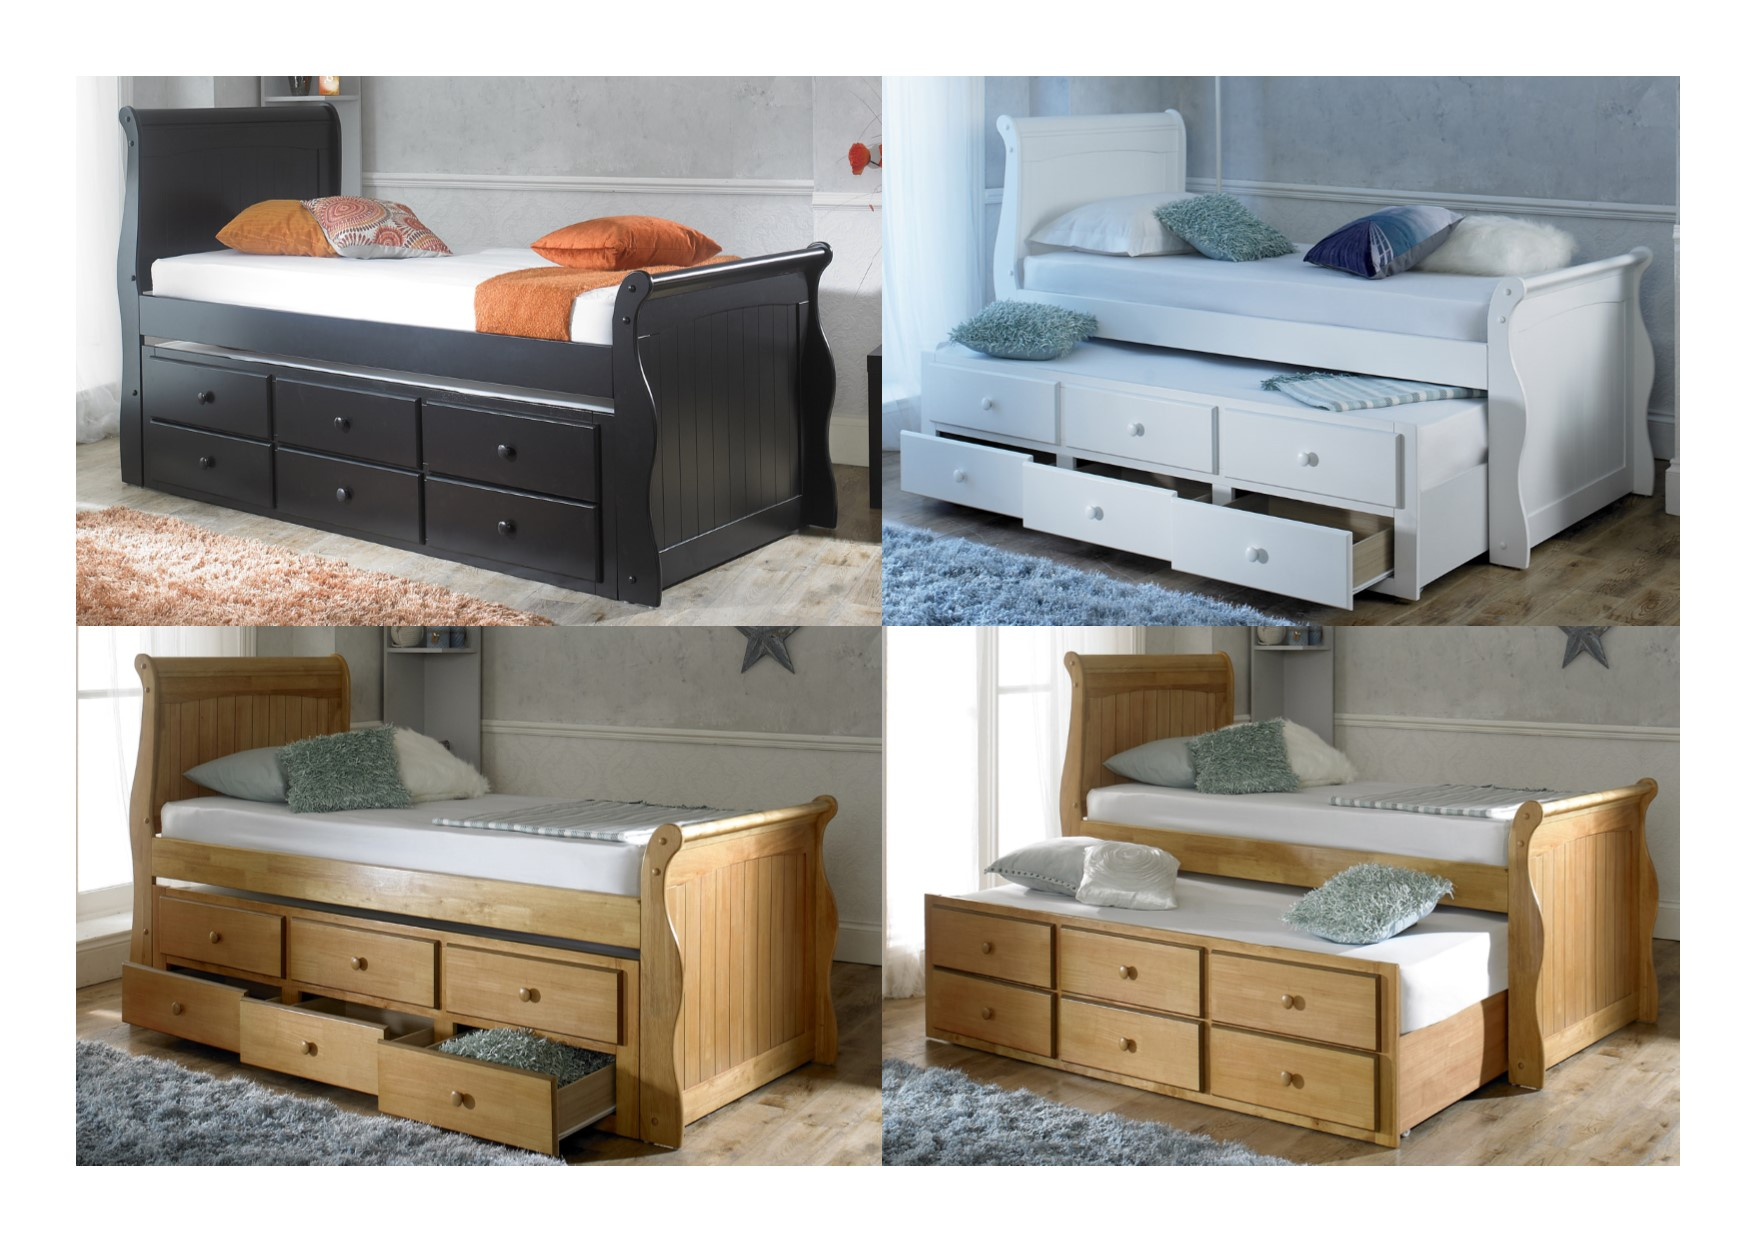 artisan beds captain single wooden storage bed with trundle black oak white ebay. Black Bedroom Furniture Sets. Home Design Ideas